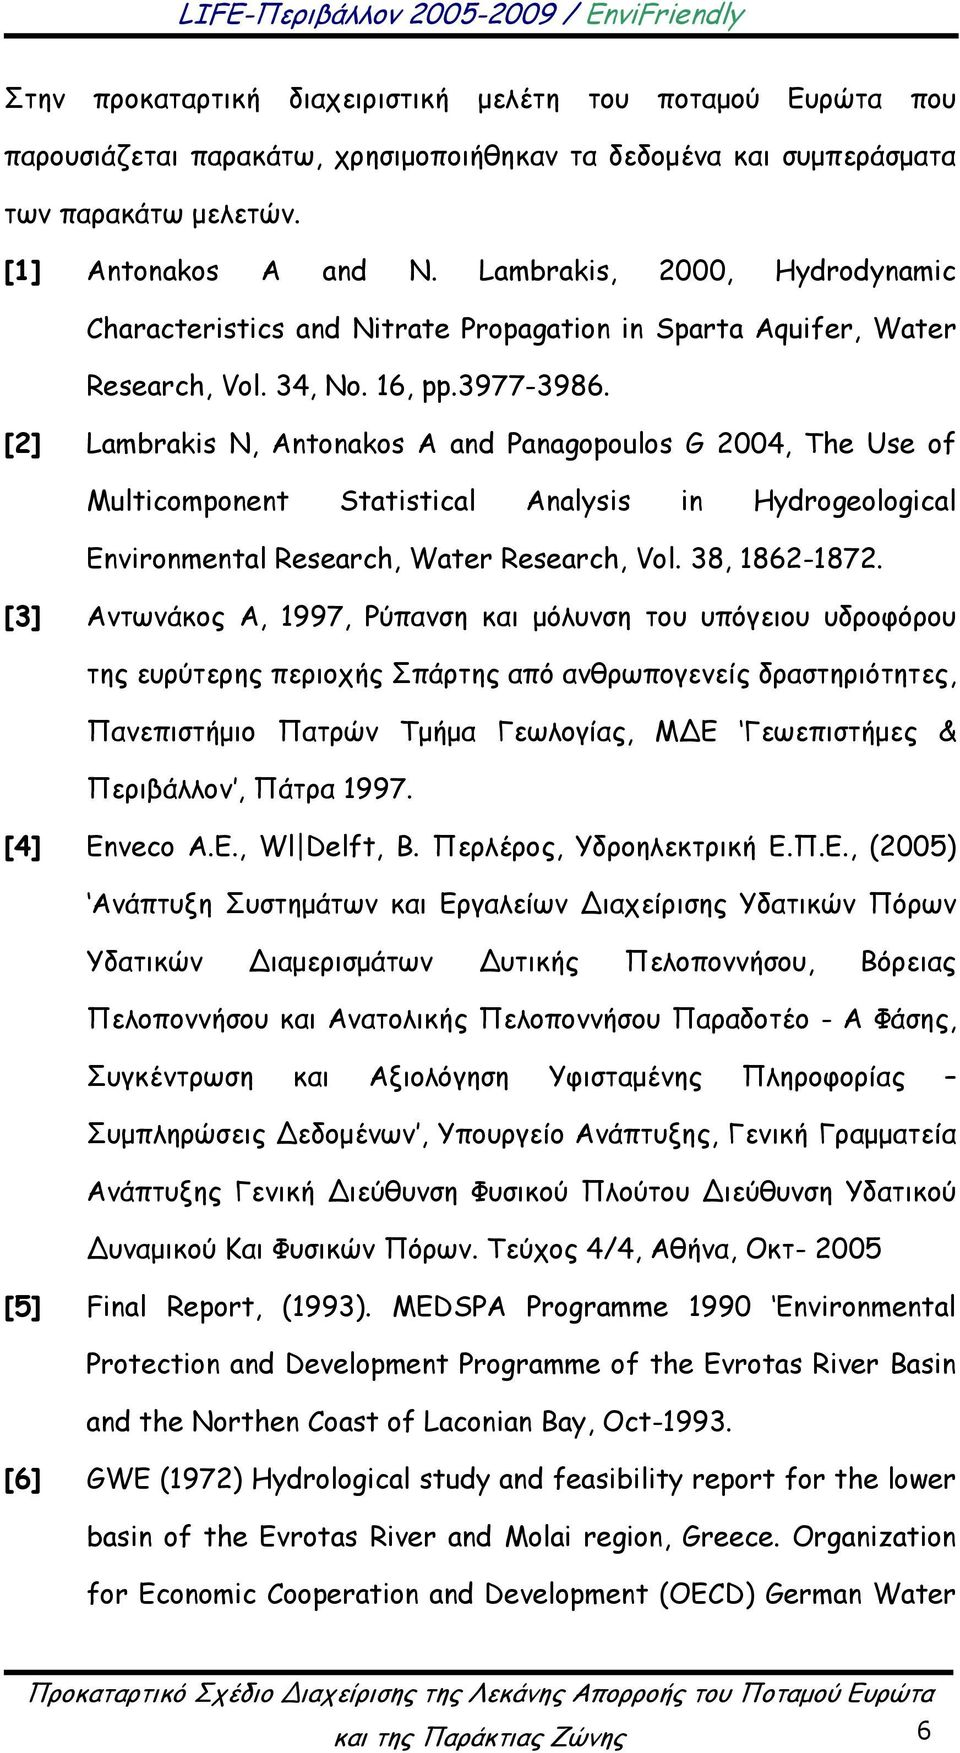 [2] Lambrakis N, Antonakos A and Panagopoulos G 2004, The Use of Multicomponent Statistical Analysis in Hydrogeological Environmental Research, Water Research, Vol. 38, 1862-1872.